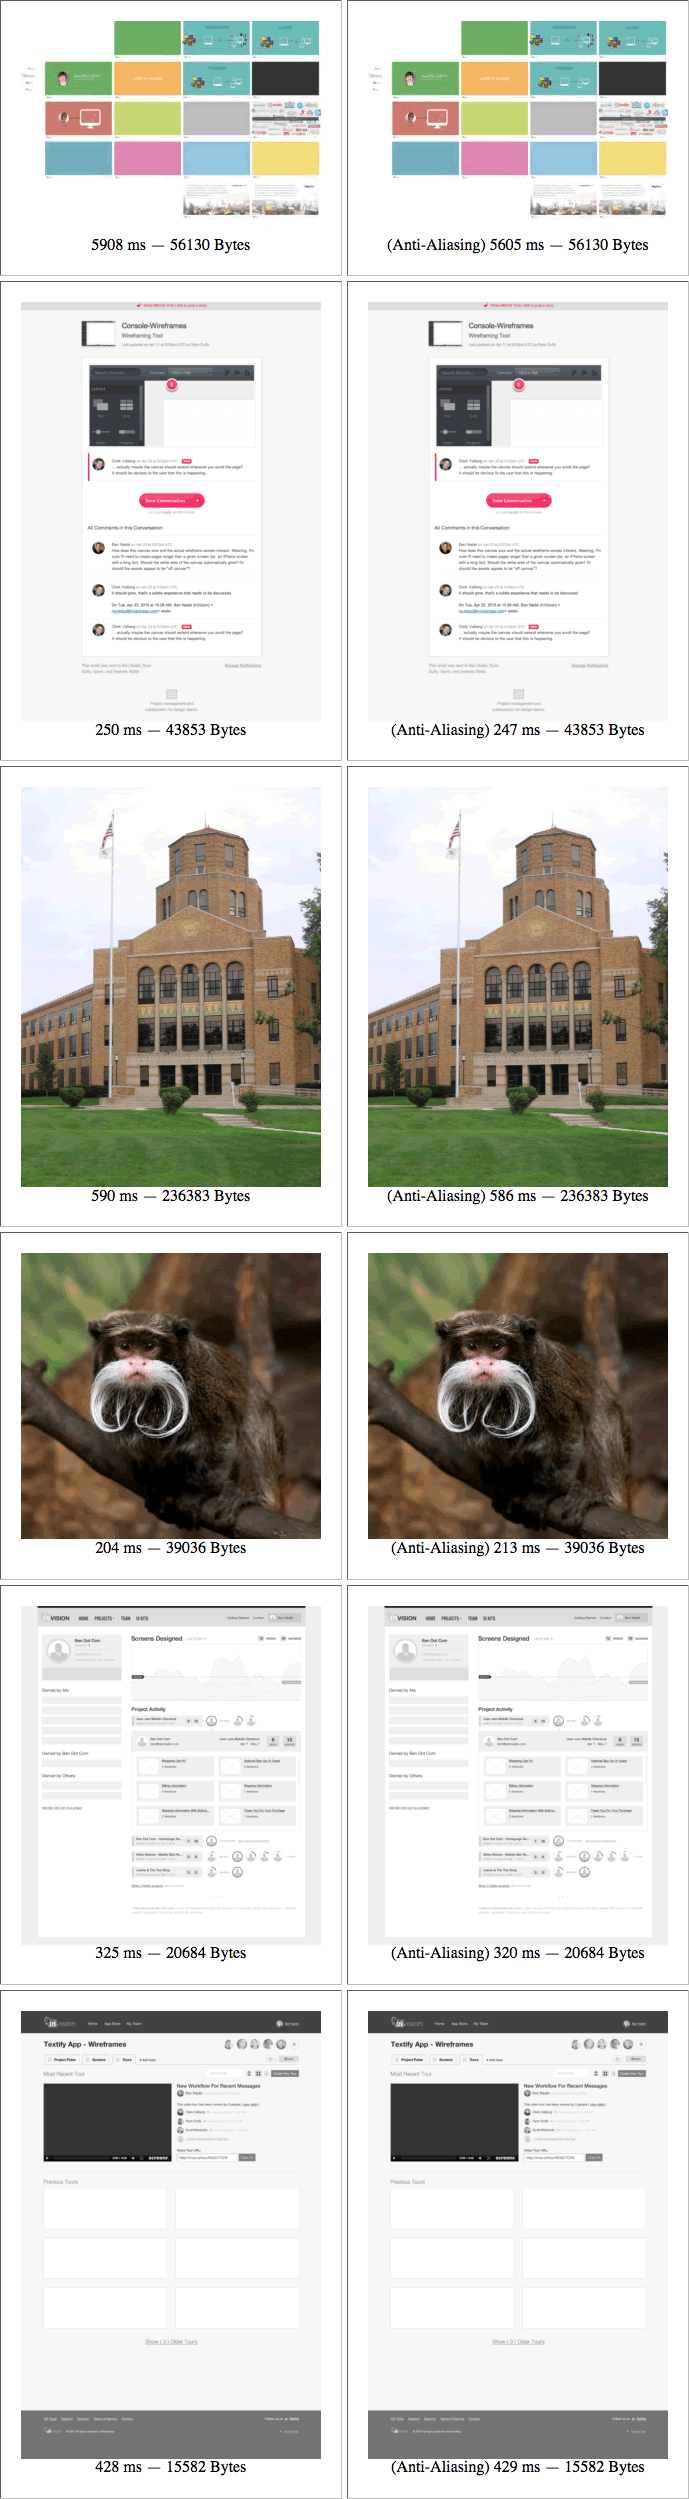 The affect of anti-aliasing on image resizing / scaling in ColdFusion.